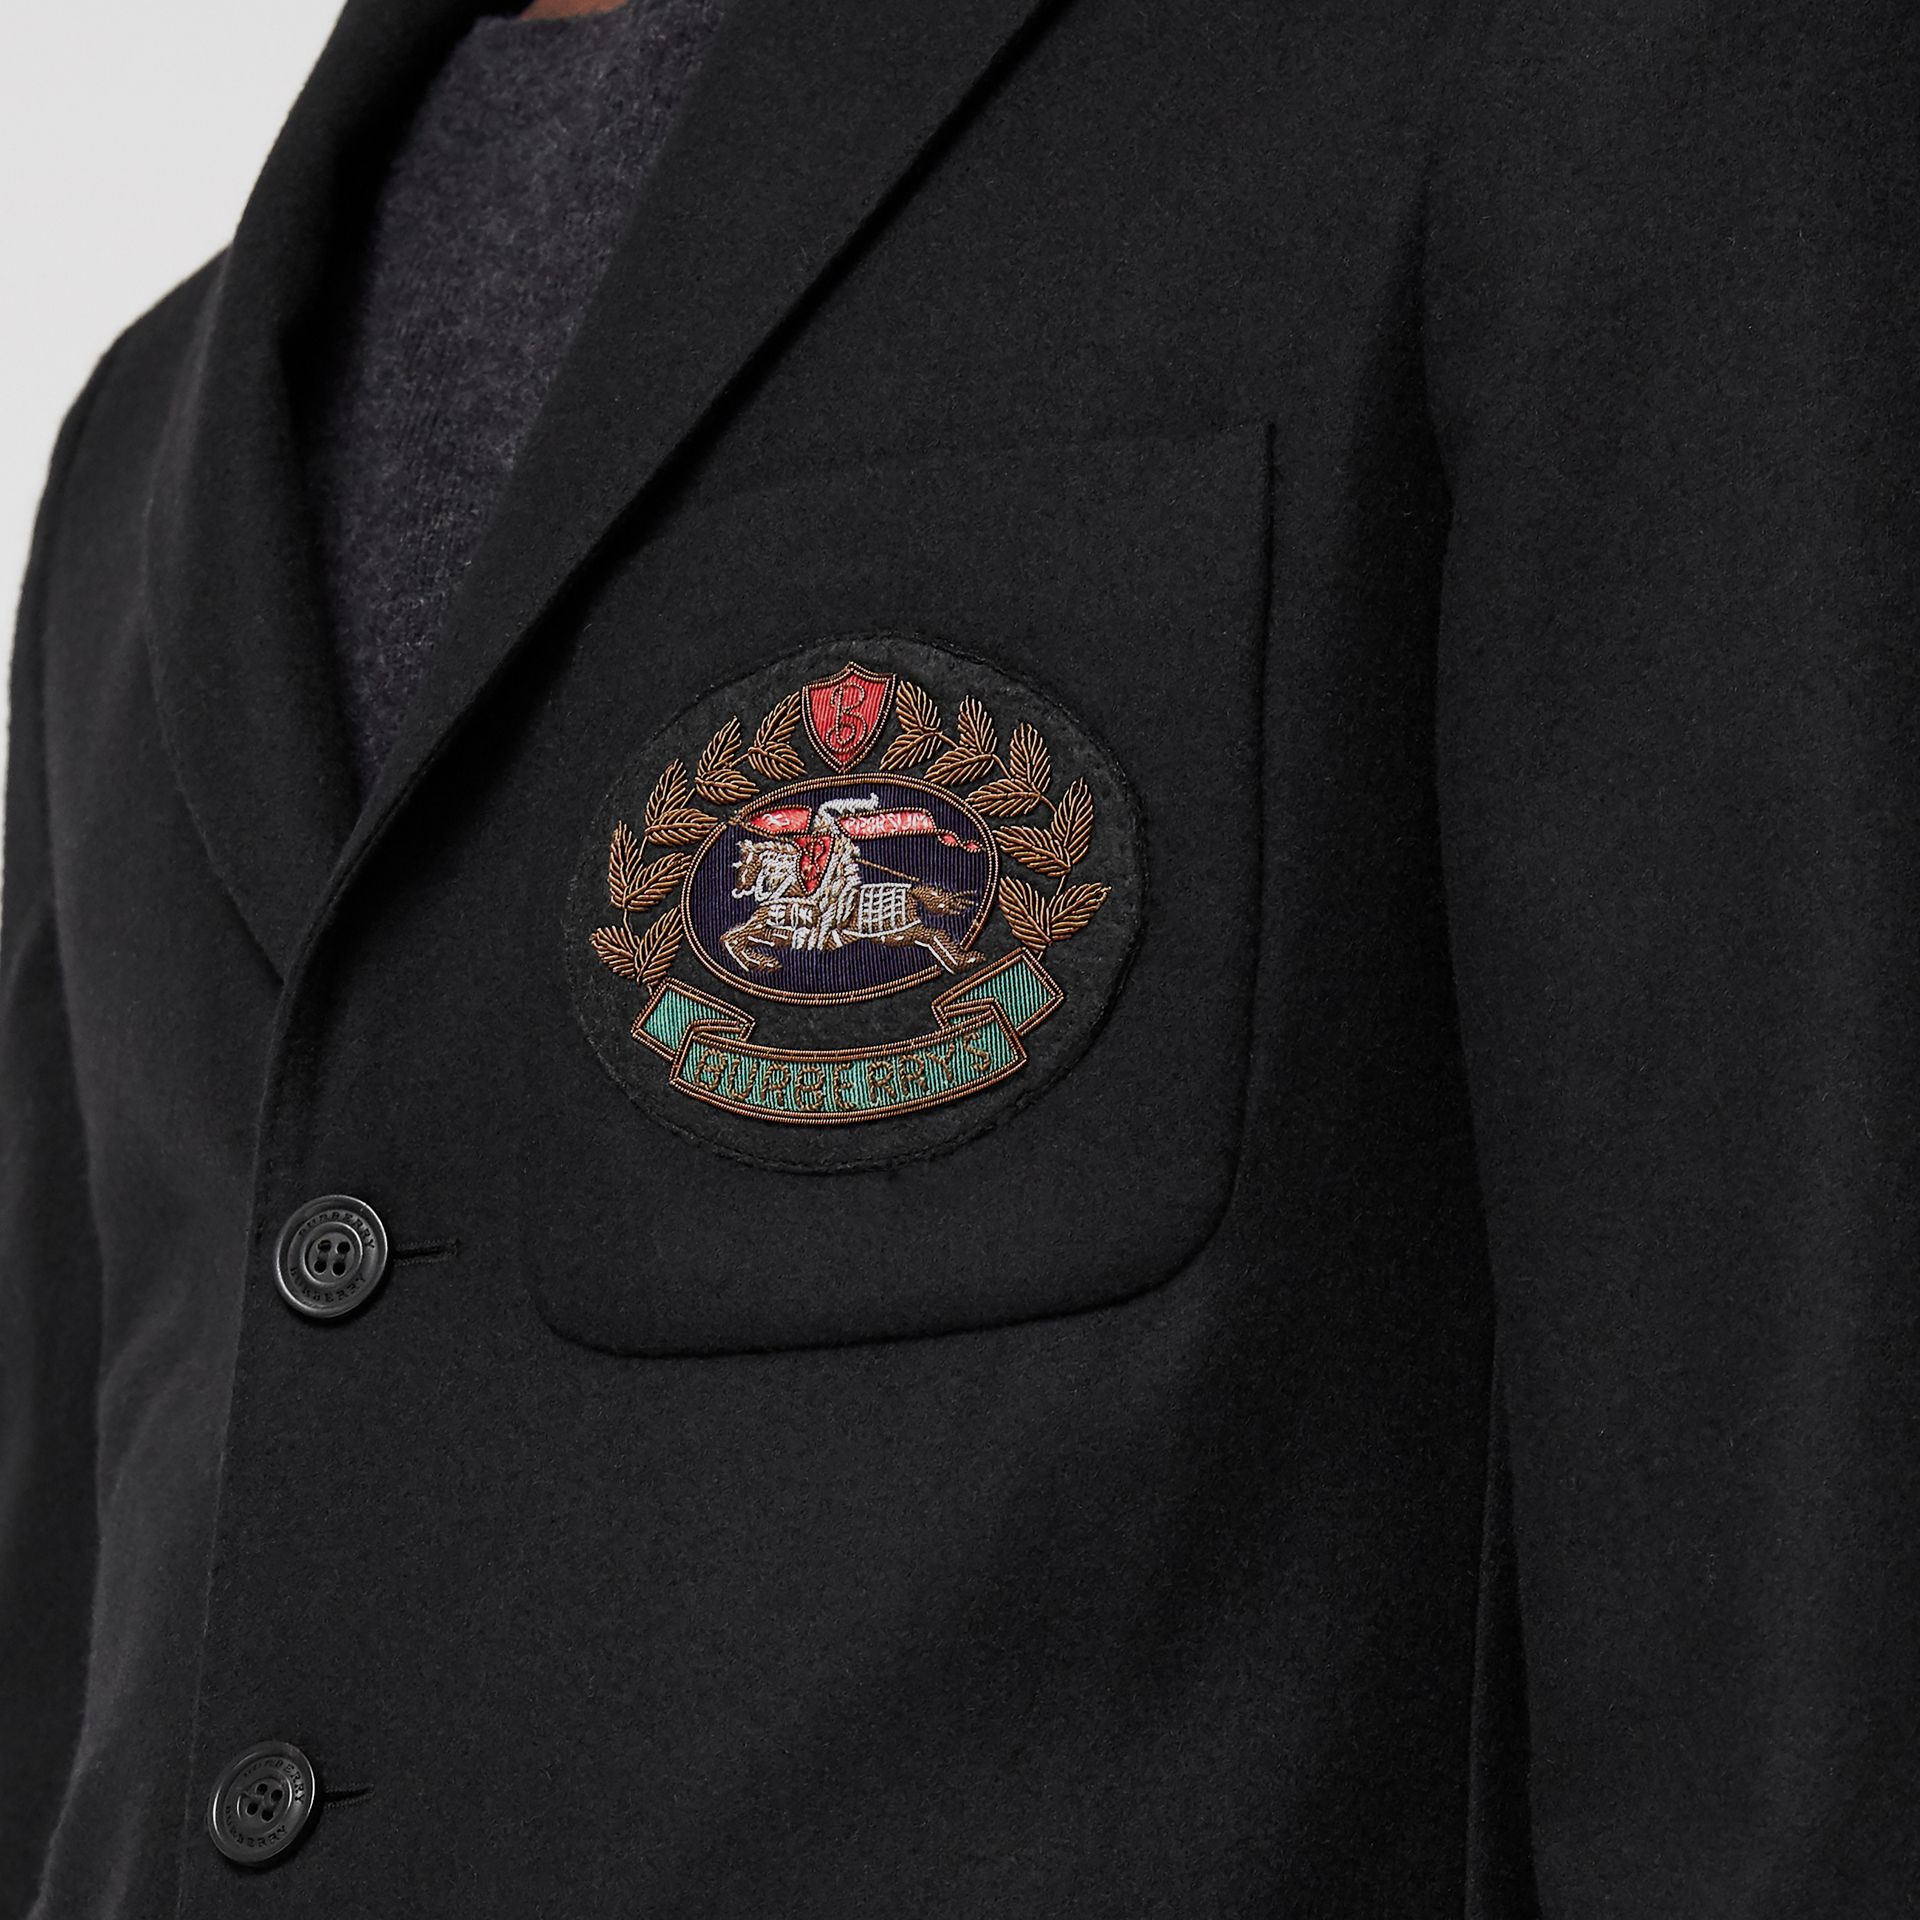 Slim Fit Embroidered Crest Wool Club Blazer in Black - Men | Burberry United States - gallery image 4